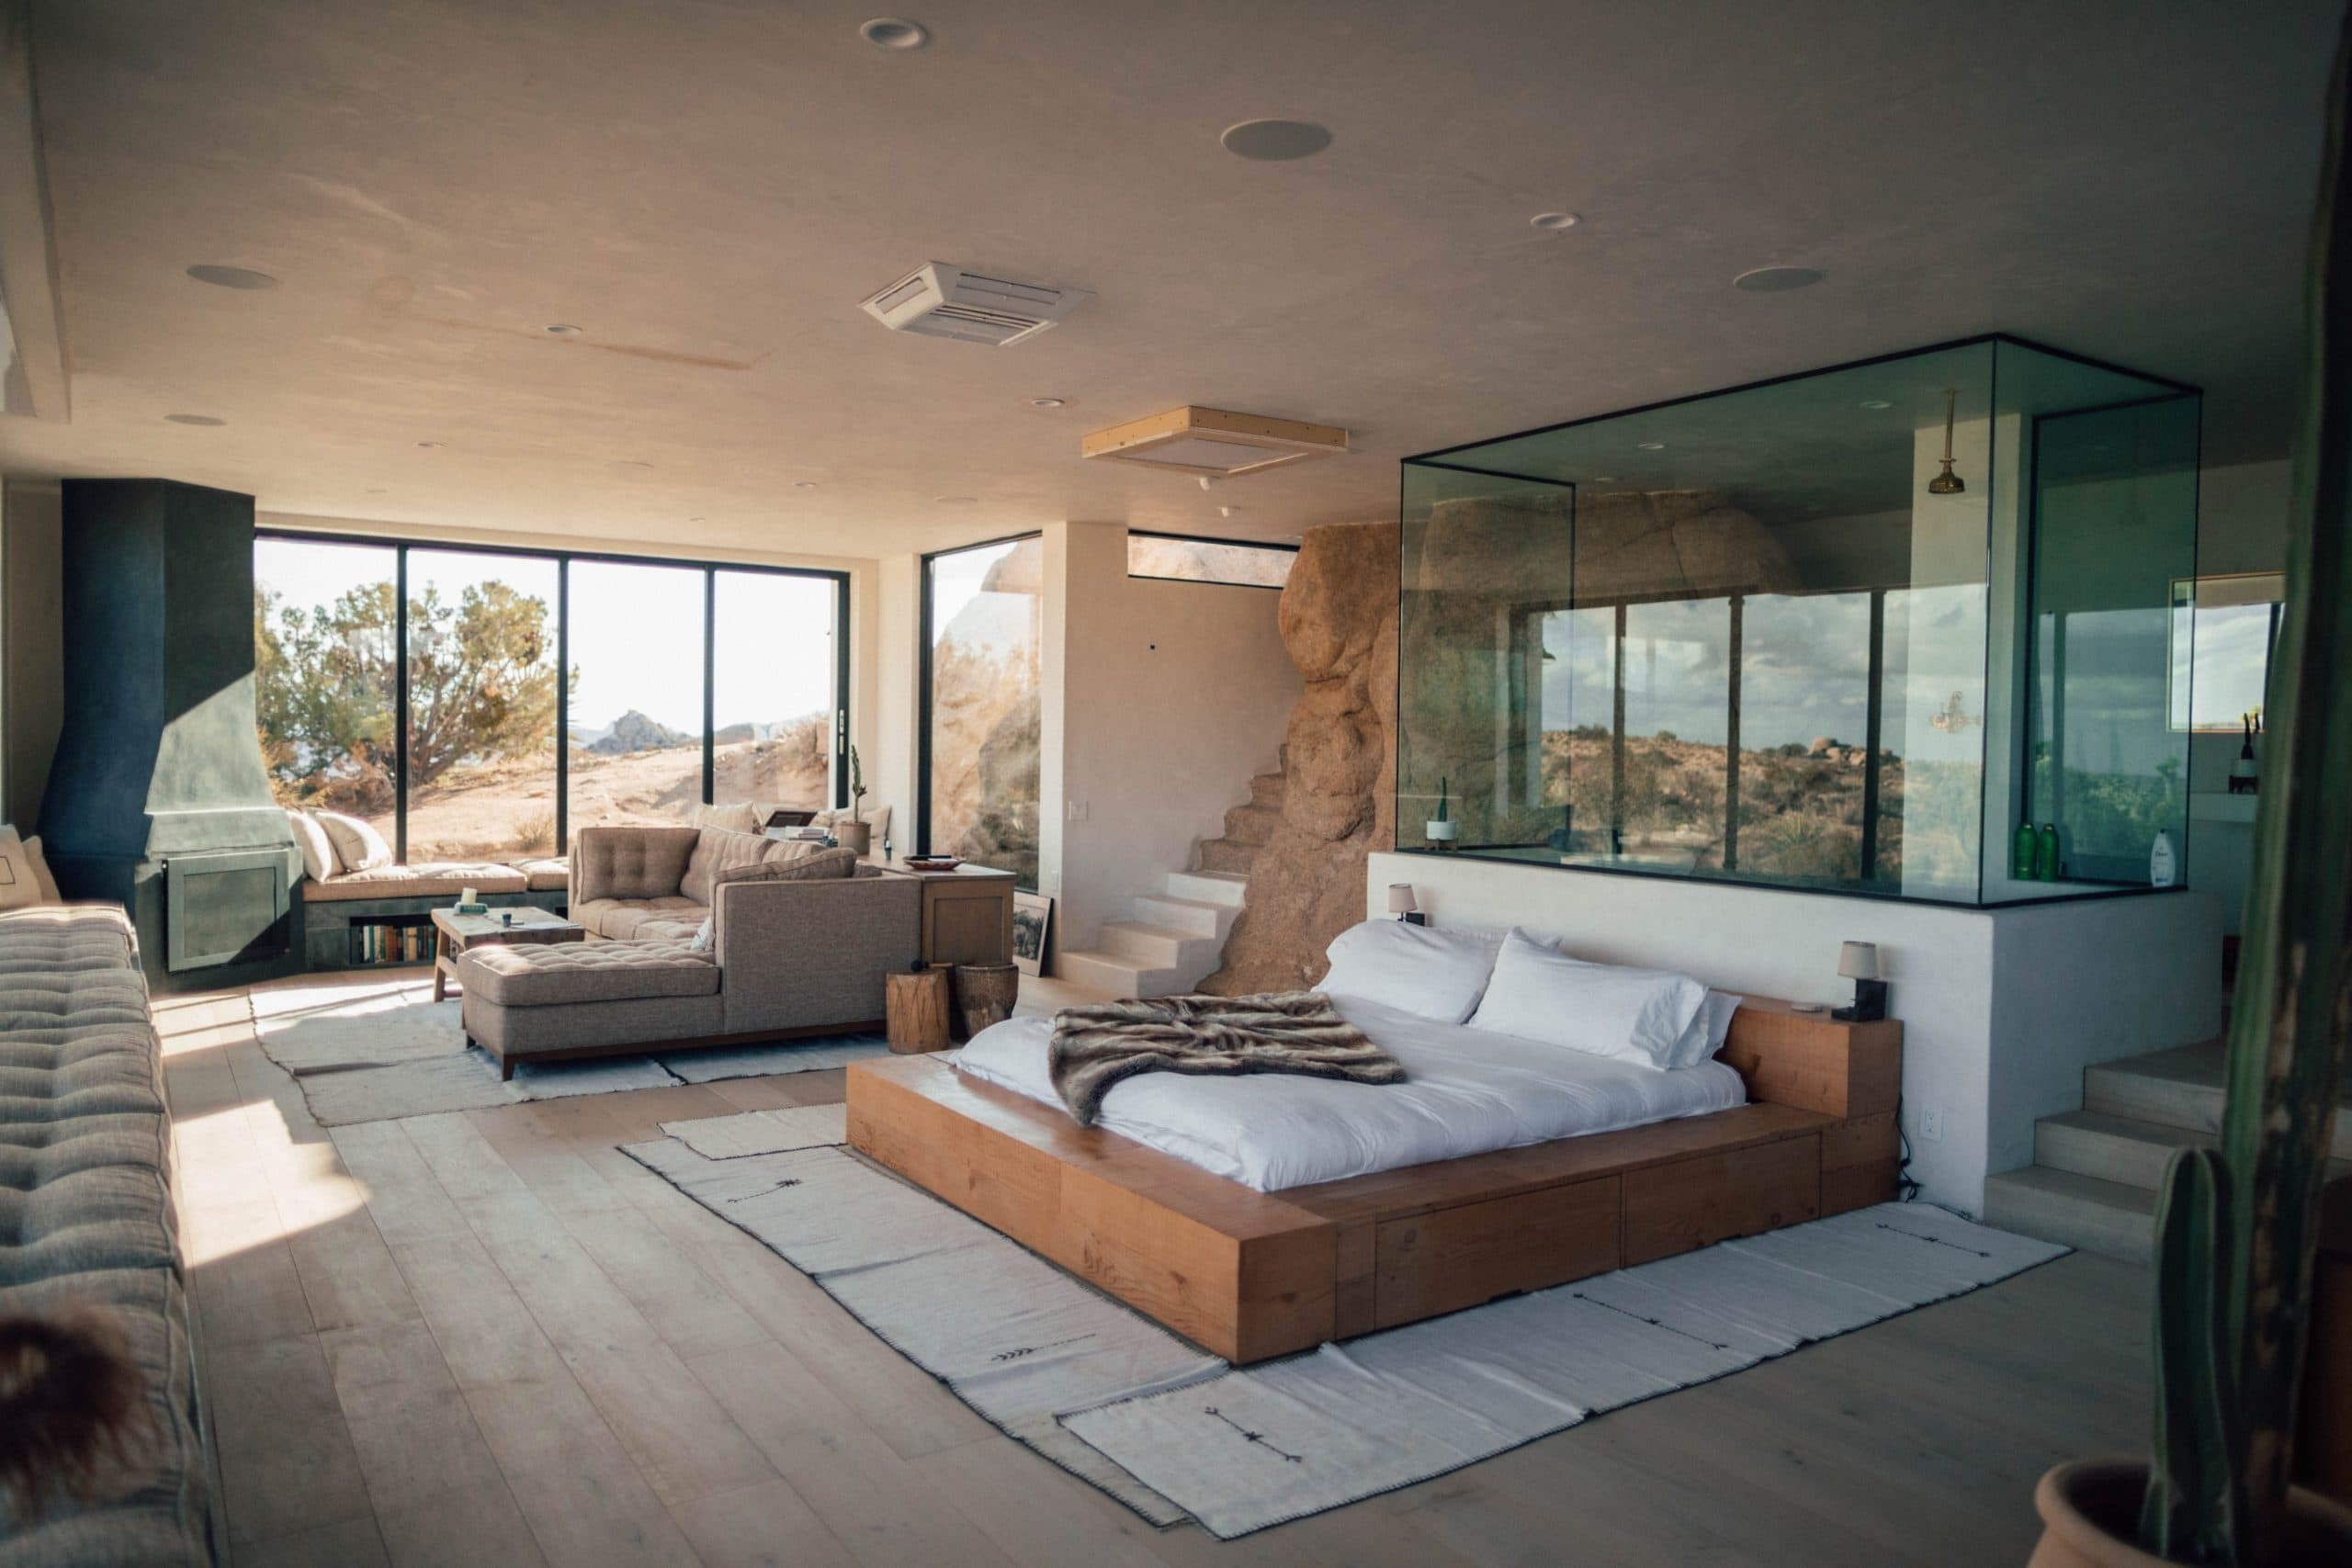 Airbnb in Joshua Tree National Park